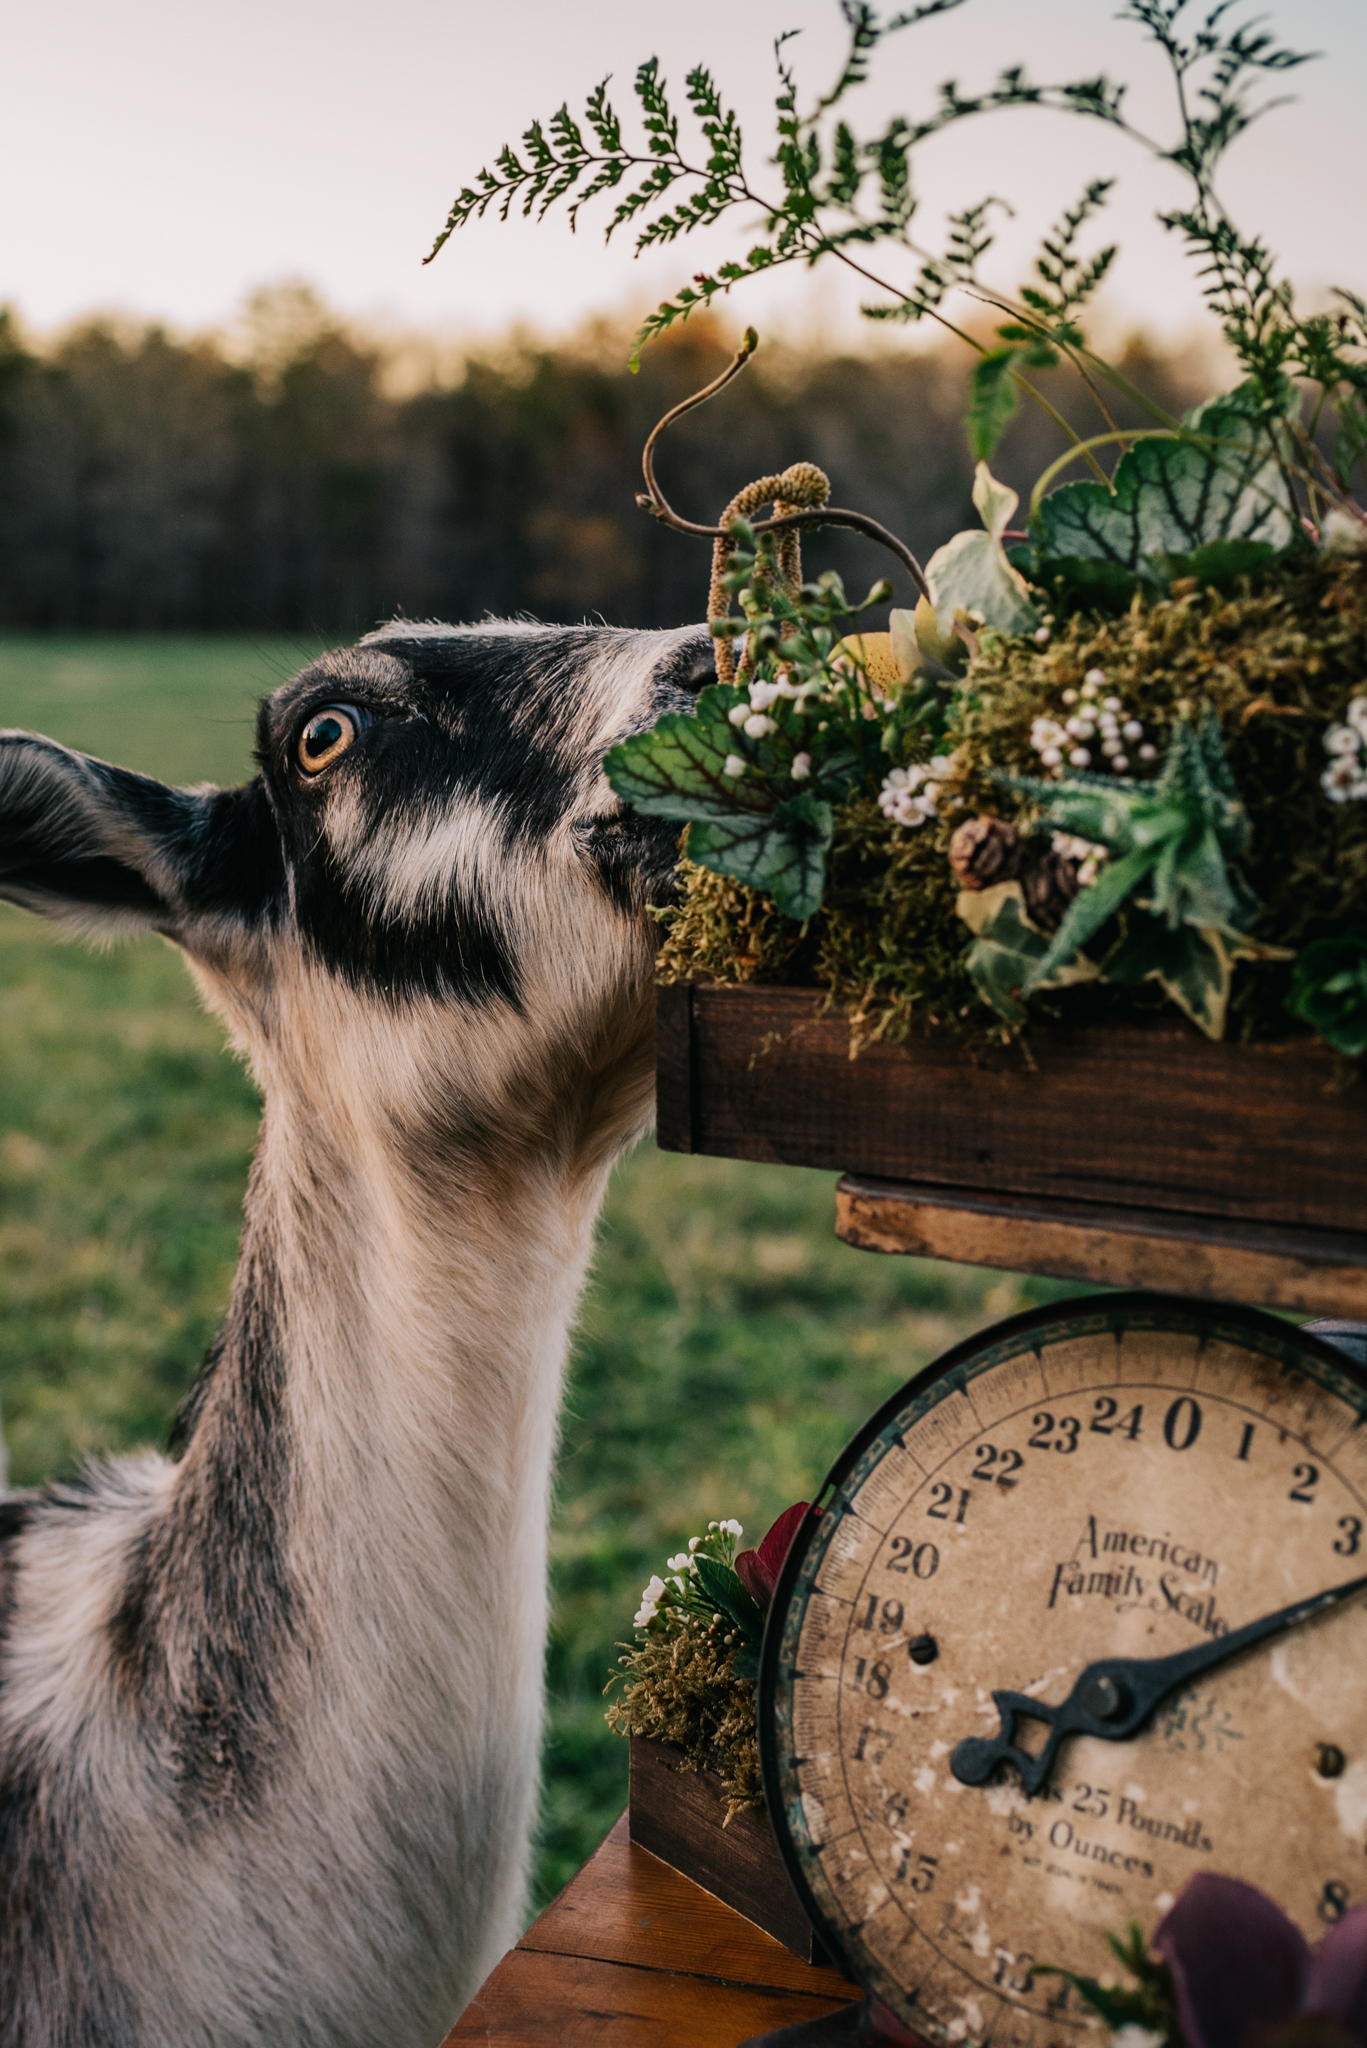 The goat tries to eat the flowers and rustic decor during the farm styled engagement session with Rose Trail Images at Windy Hill Farm near Raleigh, NC.